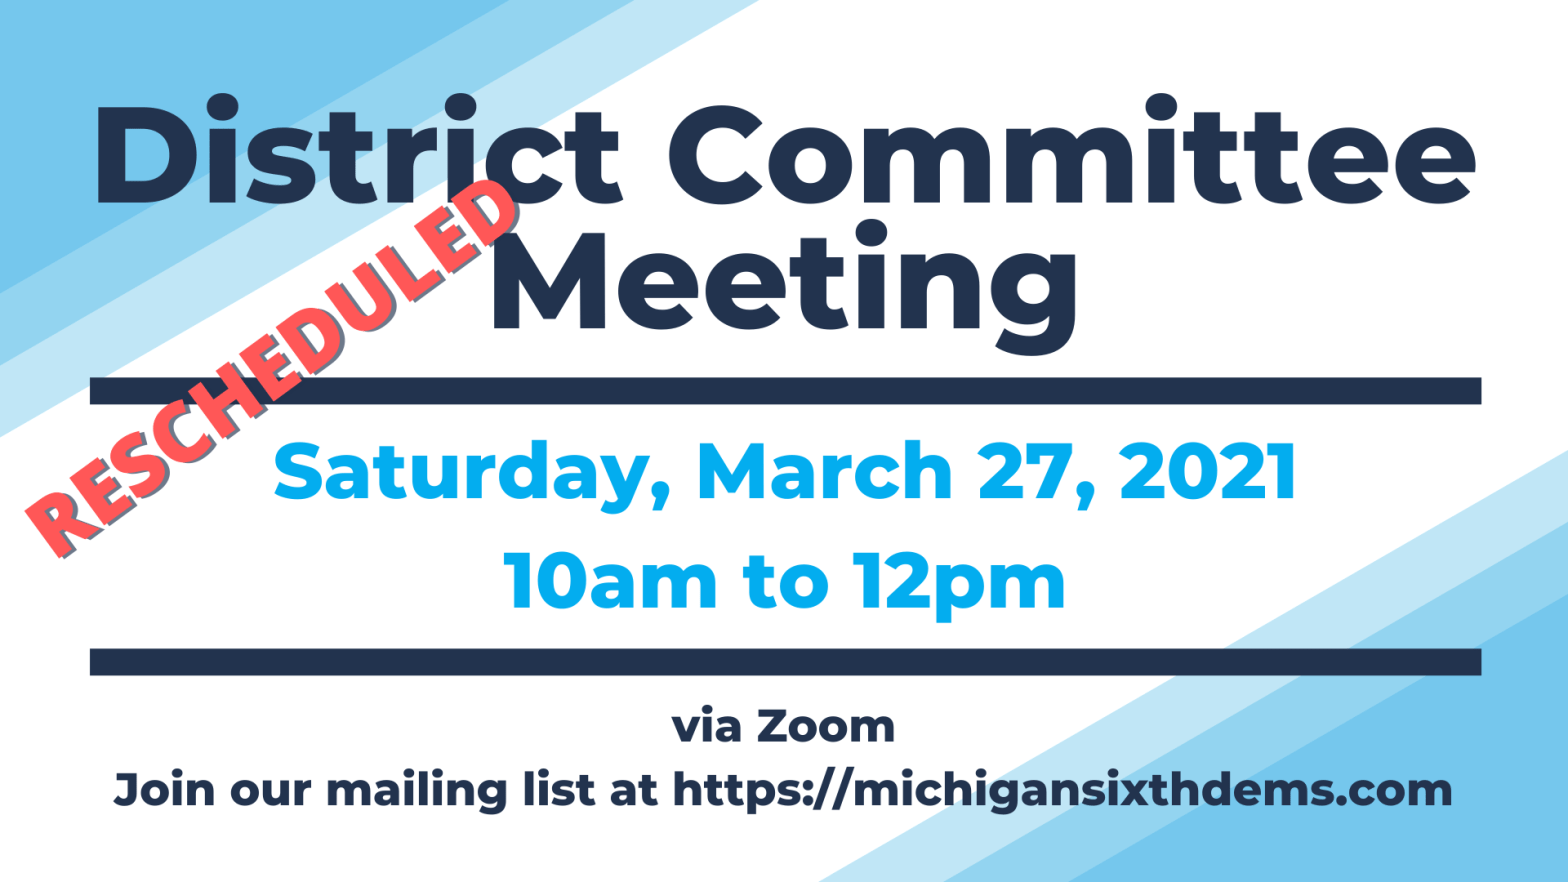 District Committee Meeting 3/27/2021